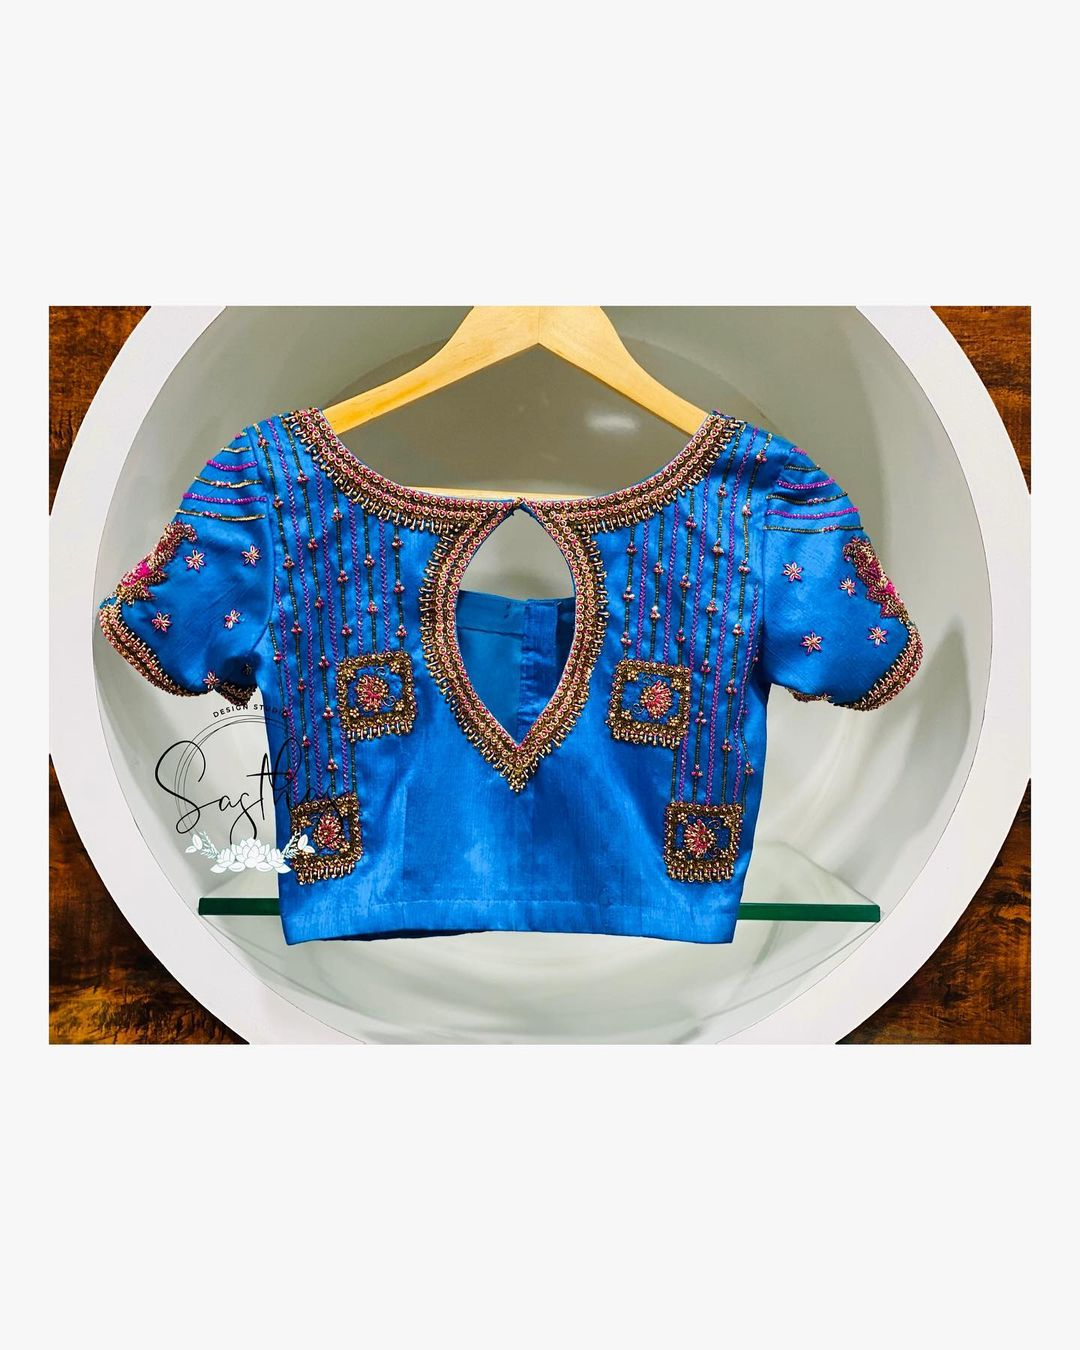 Stunning blue color key hole blouse with falling square design hand embroidery bead work.  2021-02-05